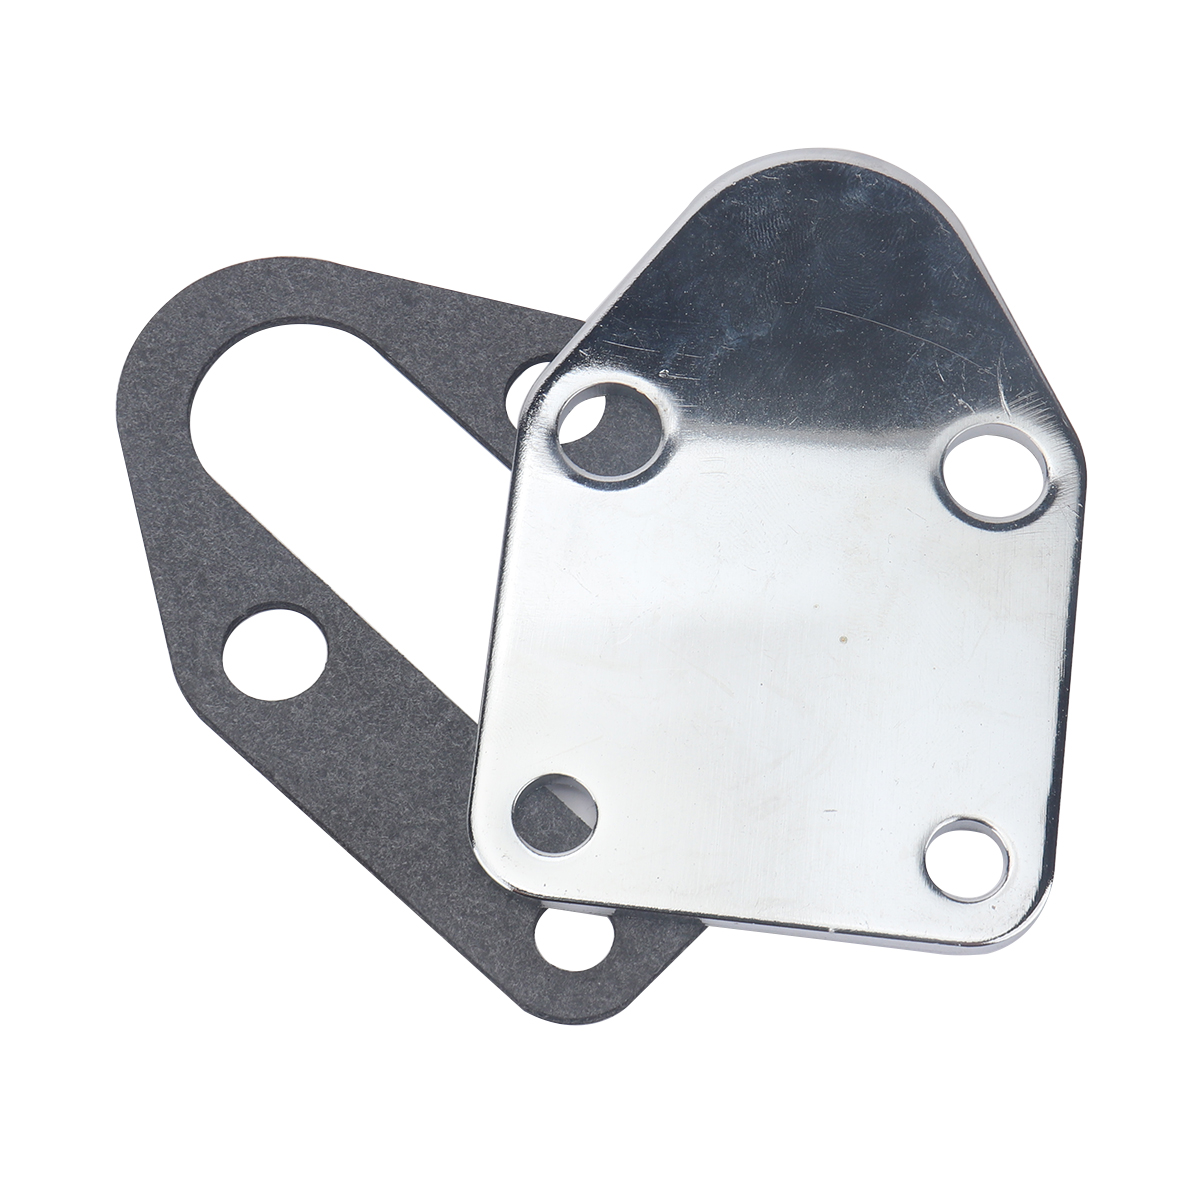 Small Block Fuel Pump Block Off Plate Chrome Steel For Chevy 283 305 327 350 383 400 Engines Silver